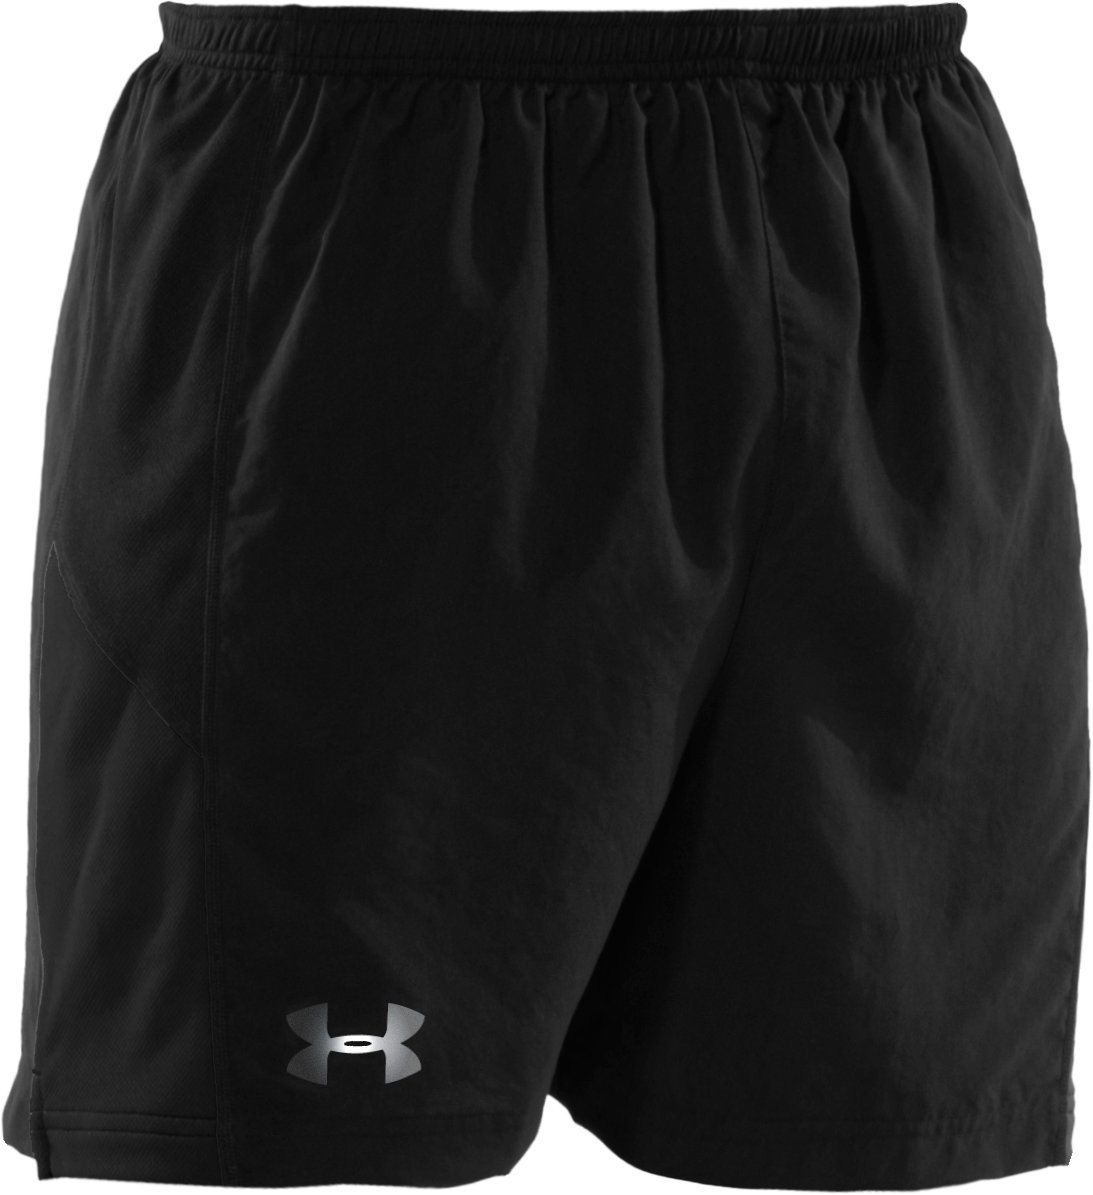 "Men's UA Escape 5"" Woven Shorts, Black"